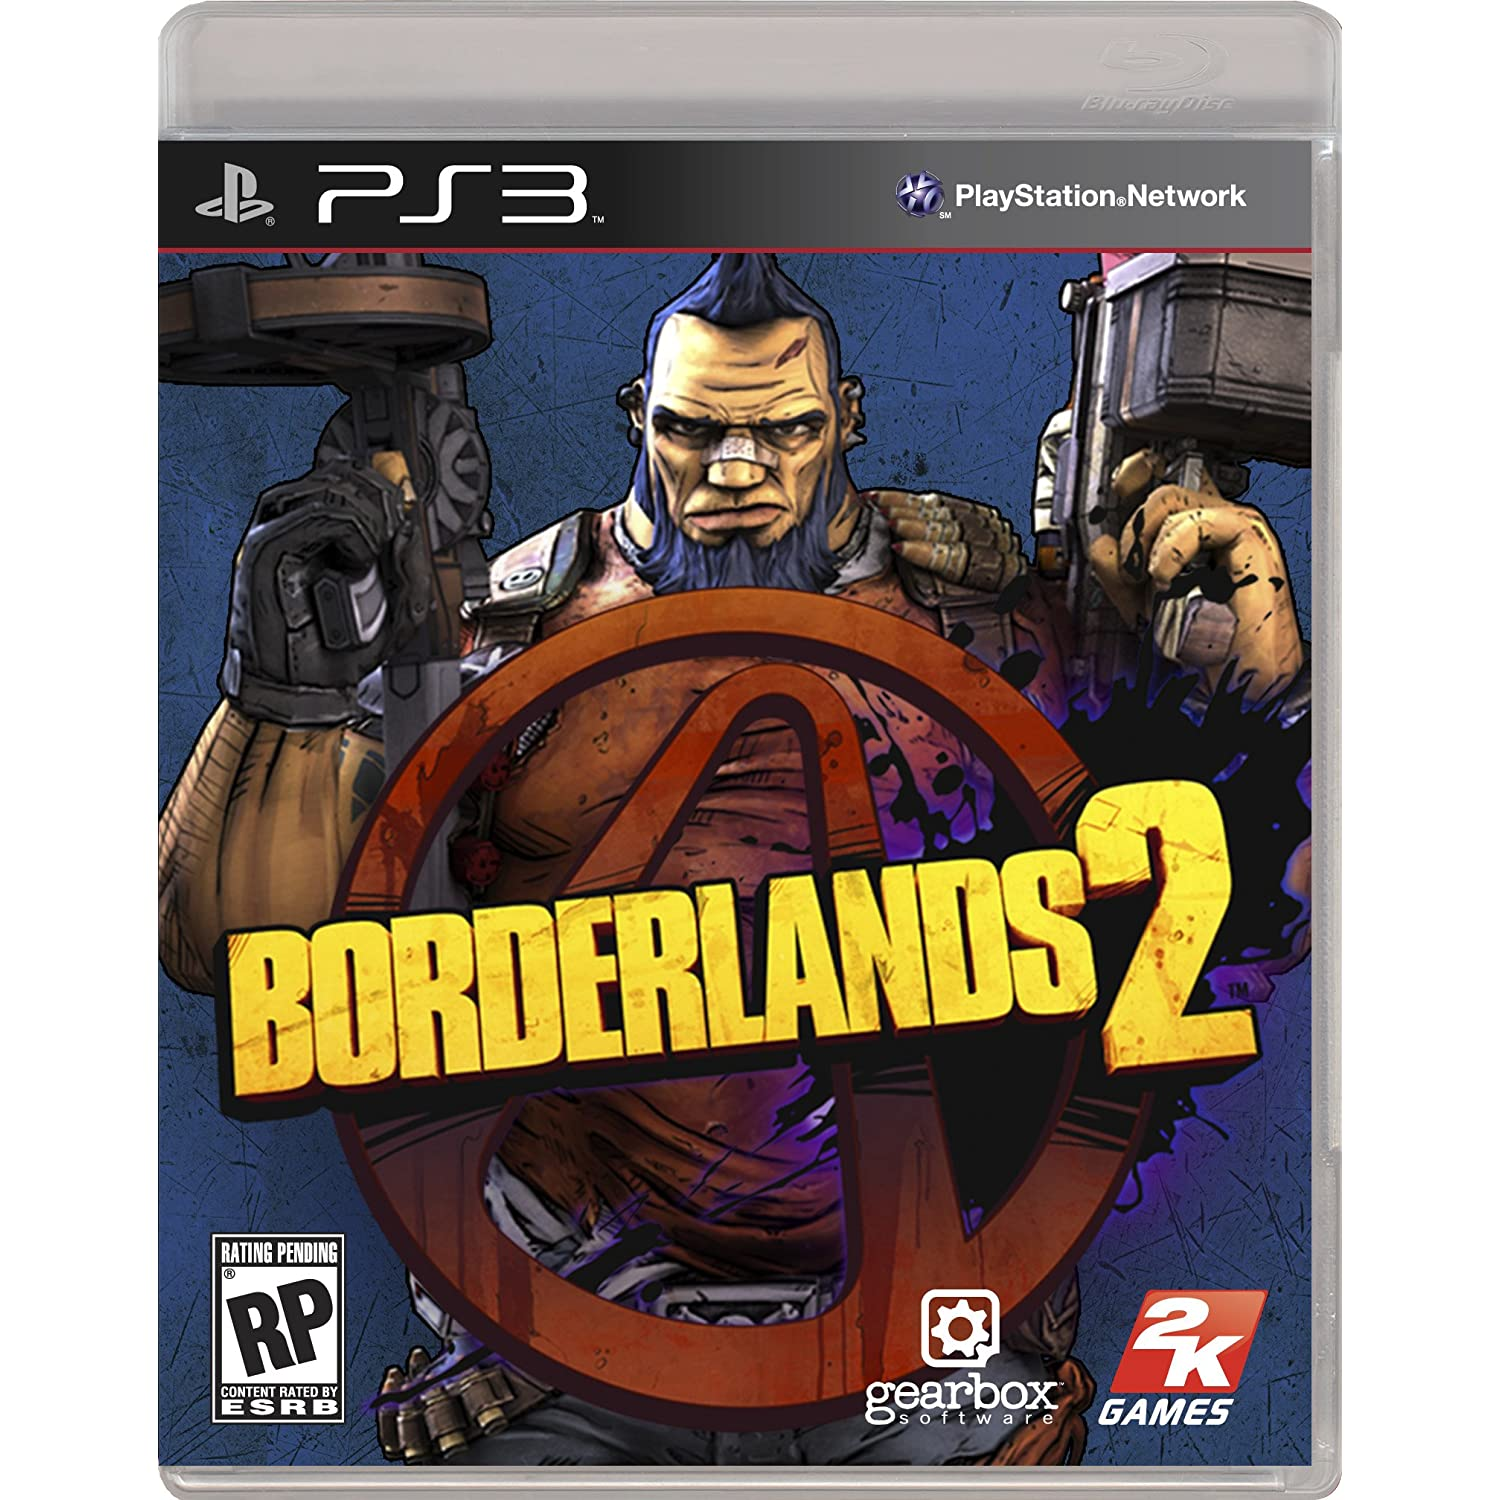 BORDERLANDS 2 OUT IN 2012! 816FsF3zGdL._AA1500_